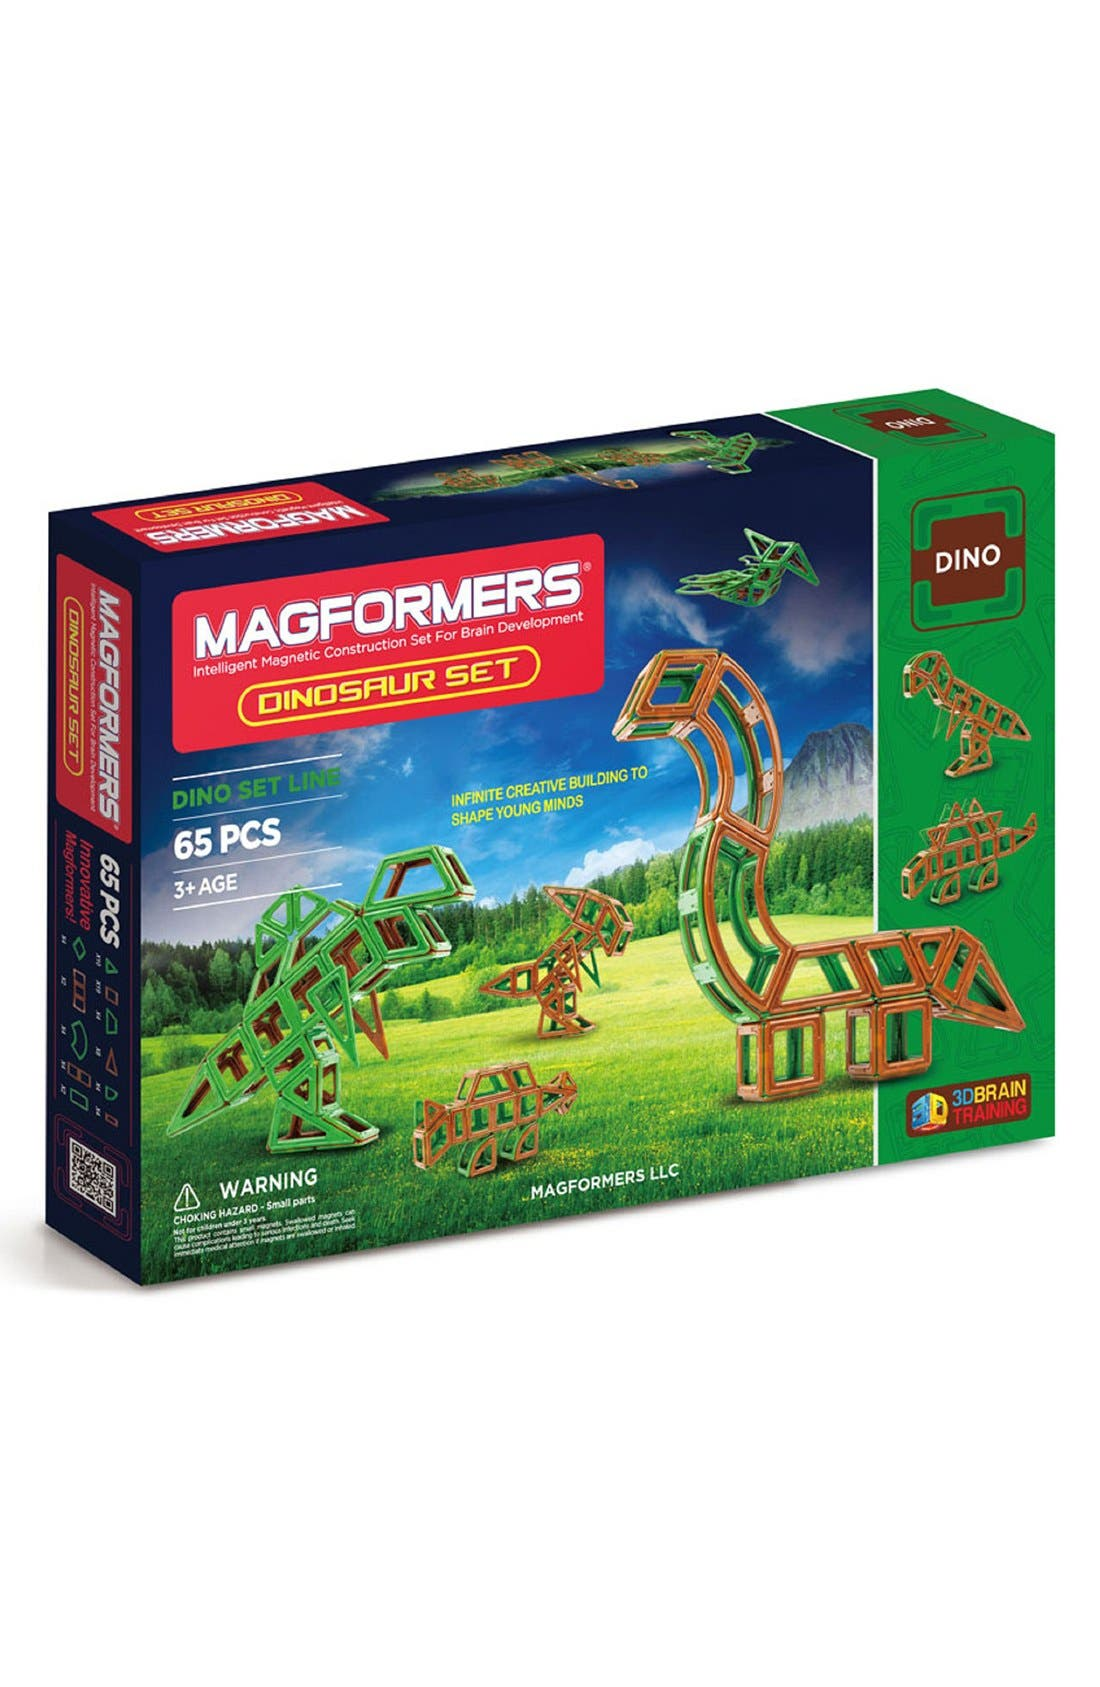 Magformers 'Dinosaur' Magnetic Construction Set